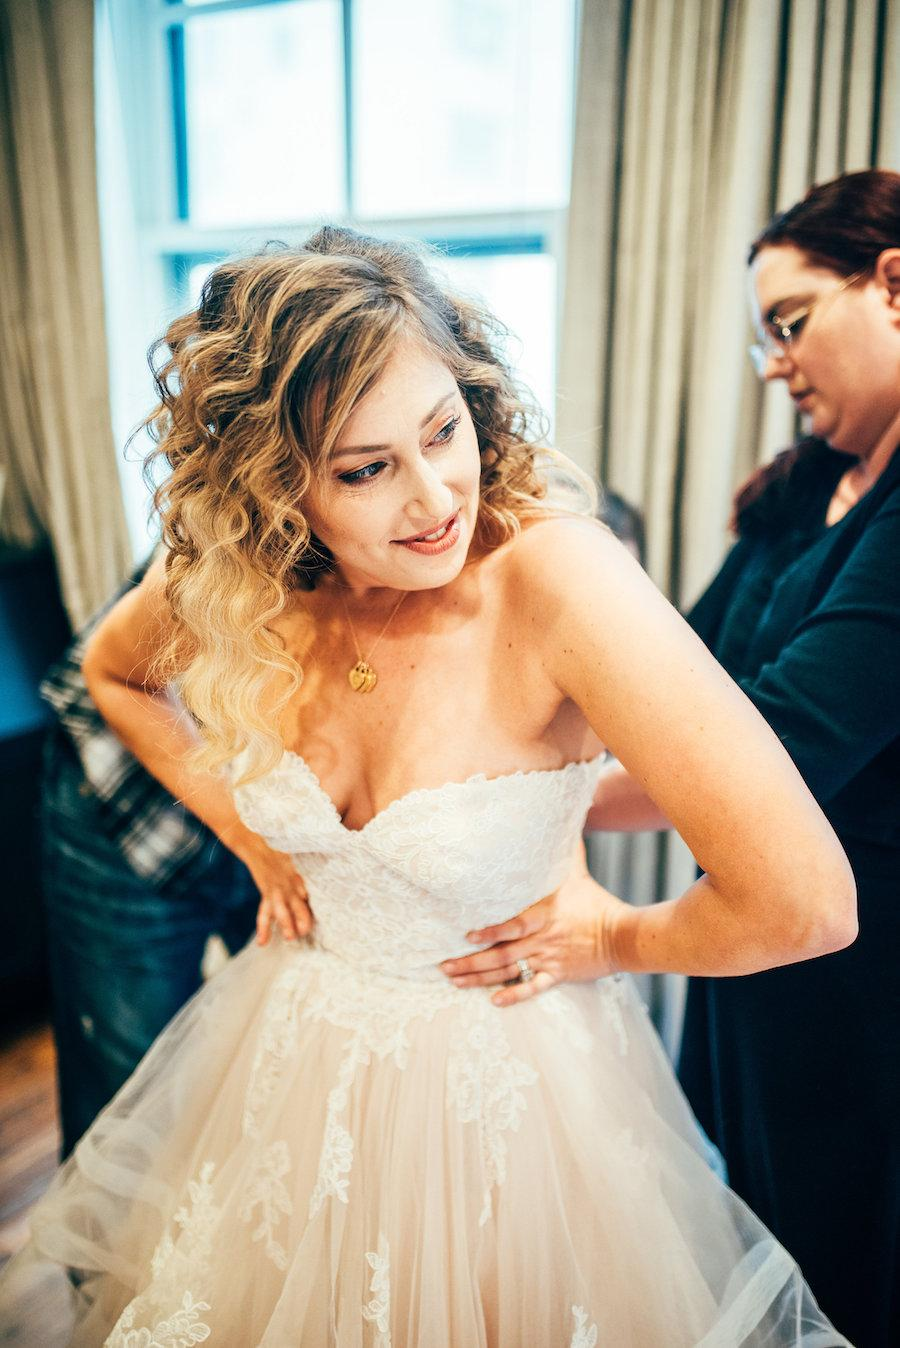 Surprise Wedding Re-Shoot by Philadelphia Wedding Vendors Events by Merida Alex Medvick Photography Philly In Love Philadelphia Weddings